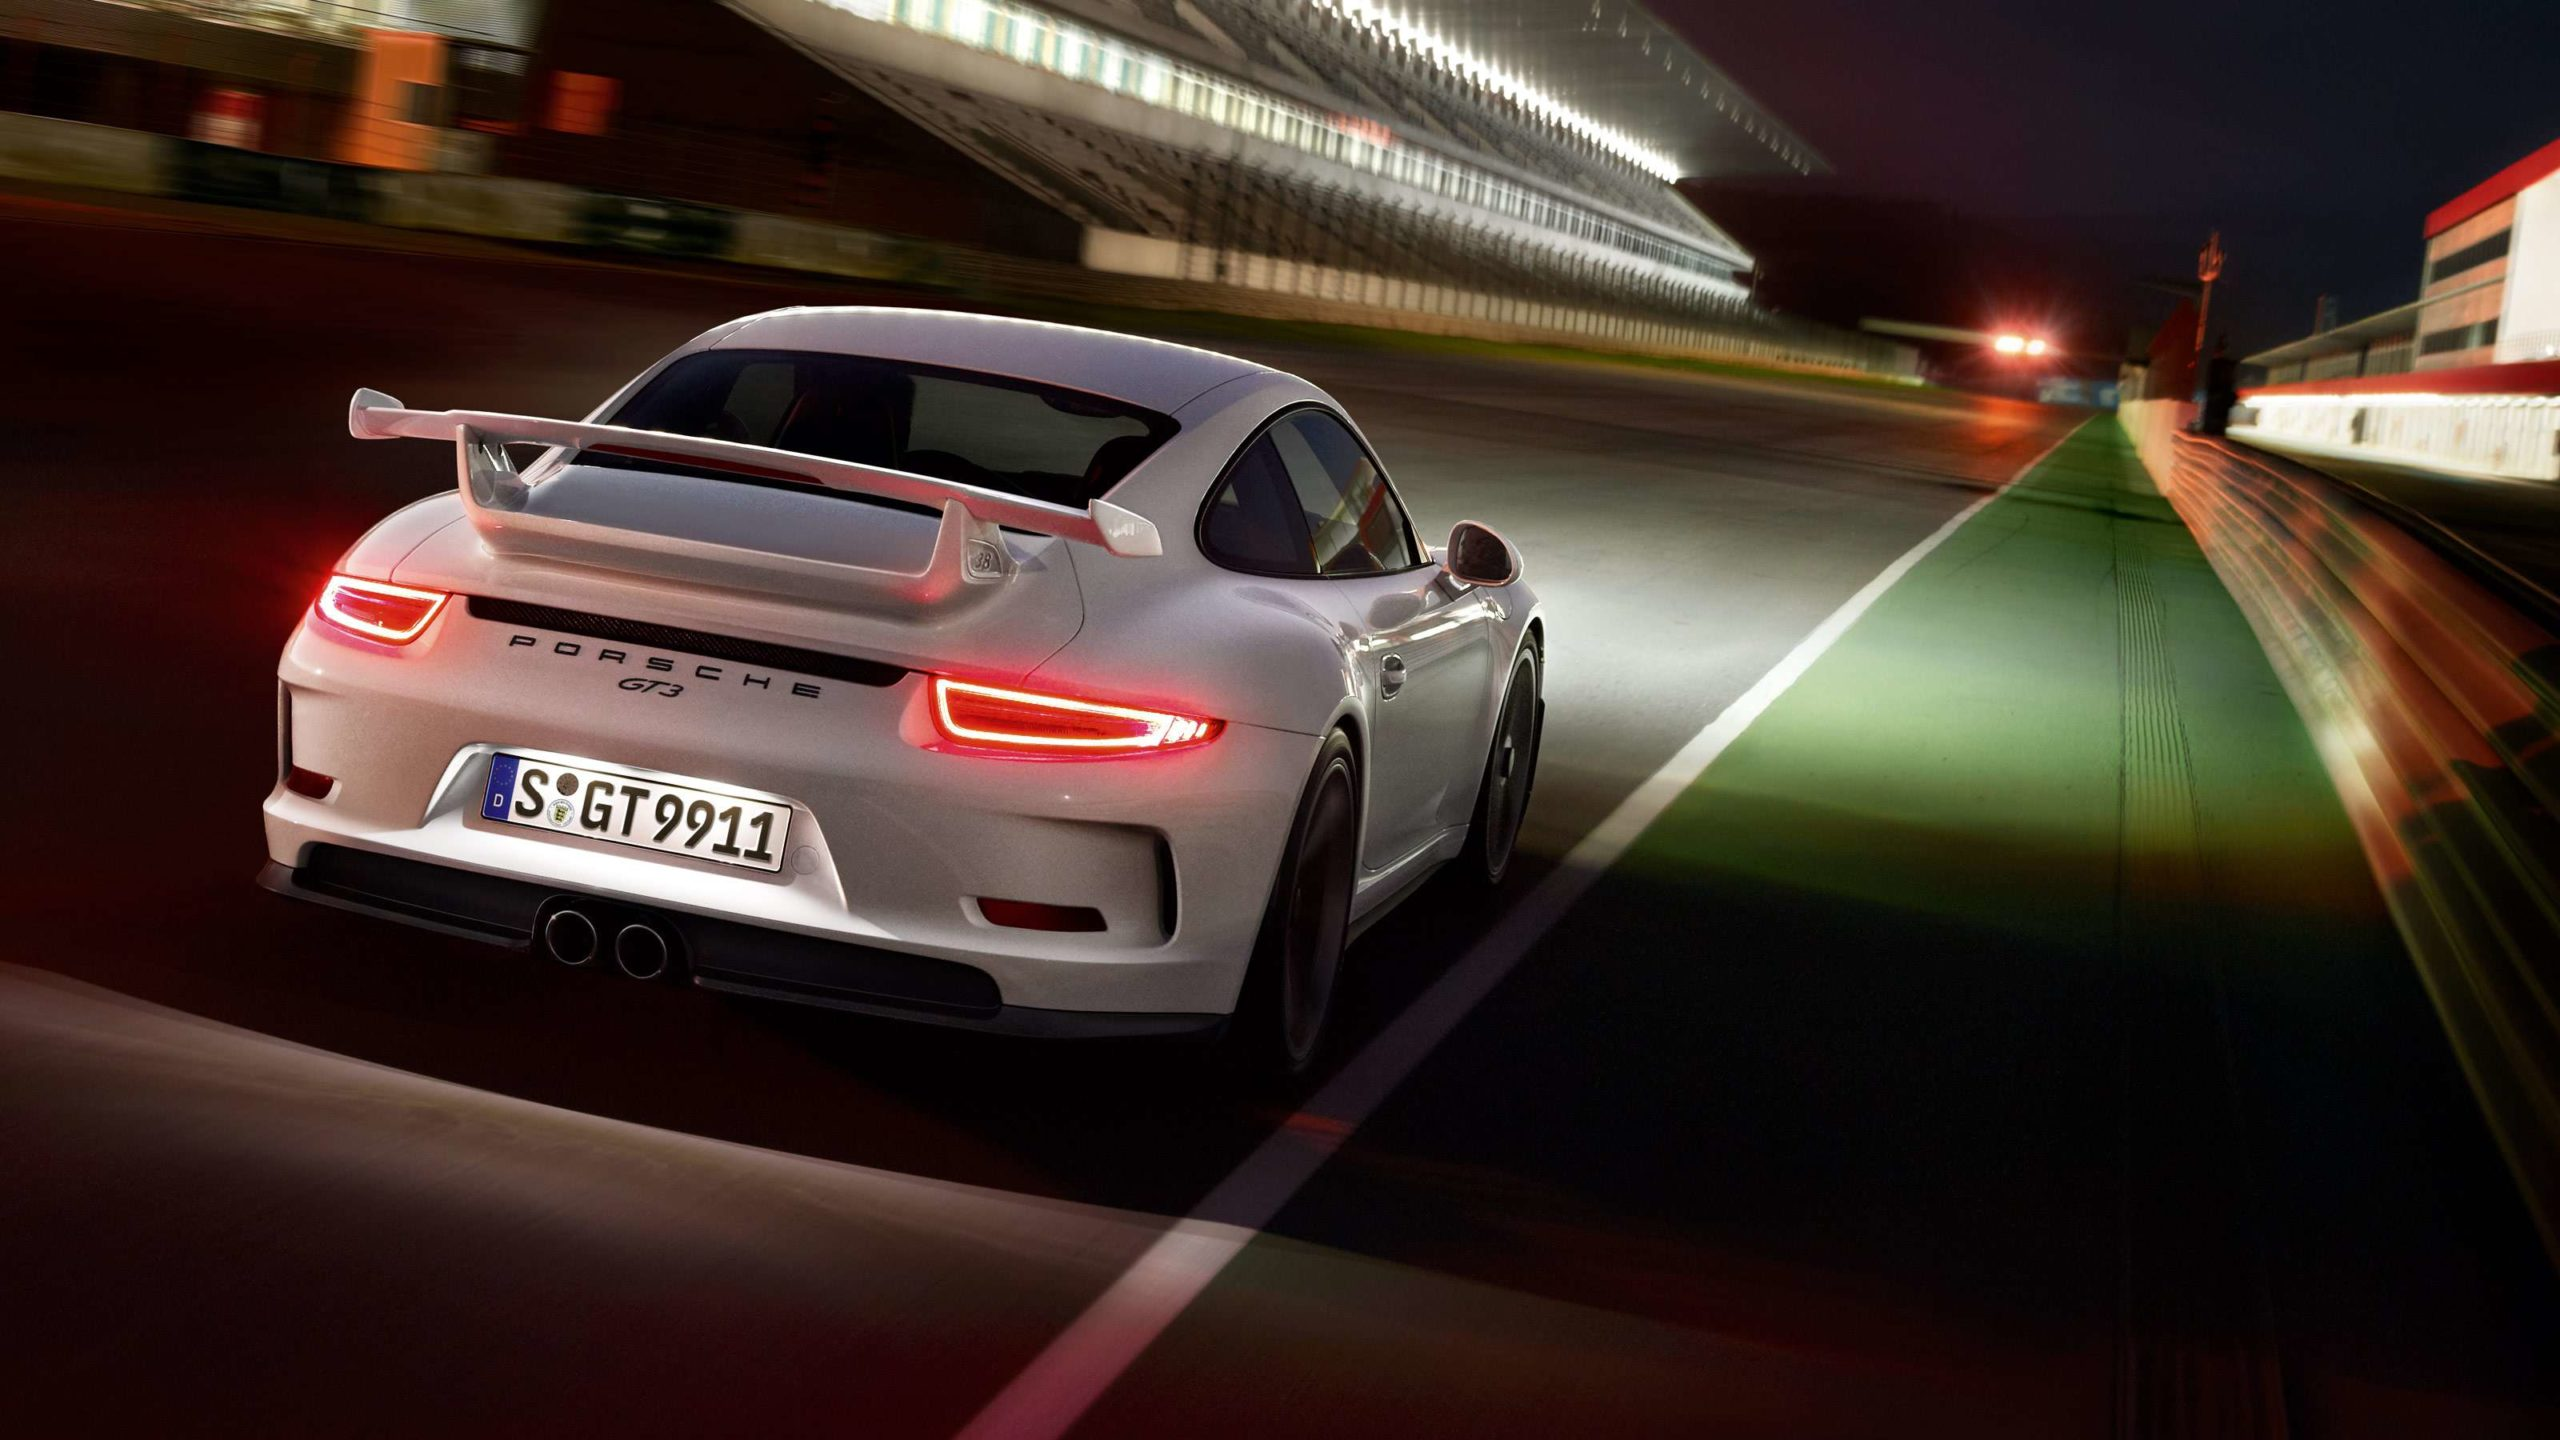 porsche wallpaper hd 1920x1080